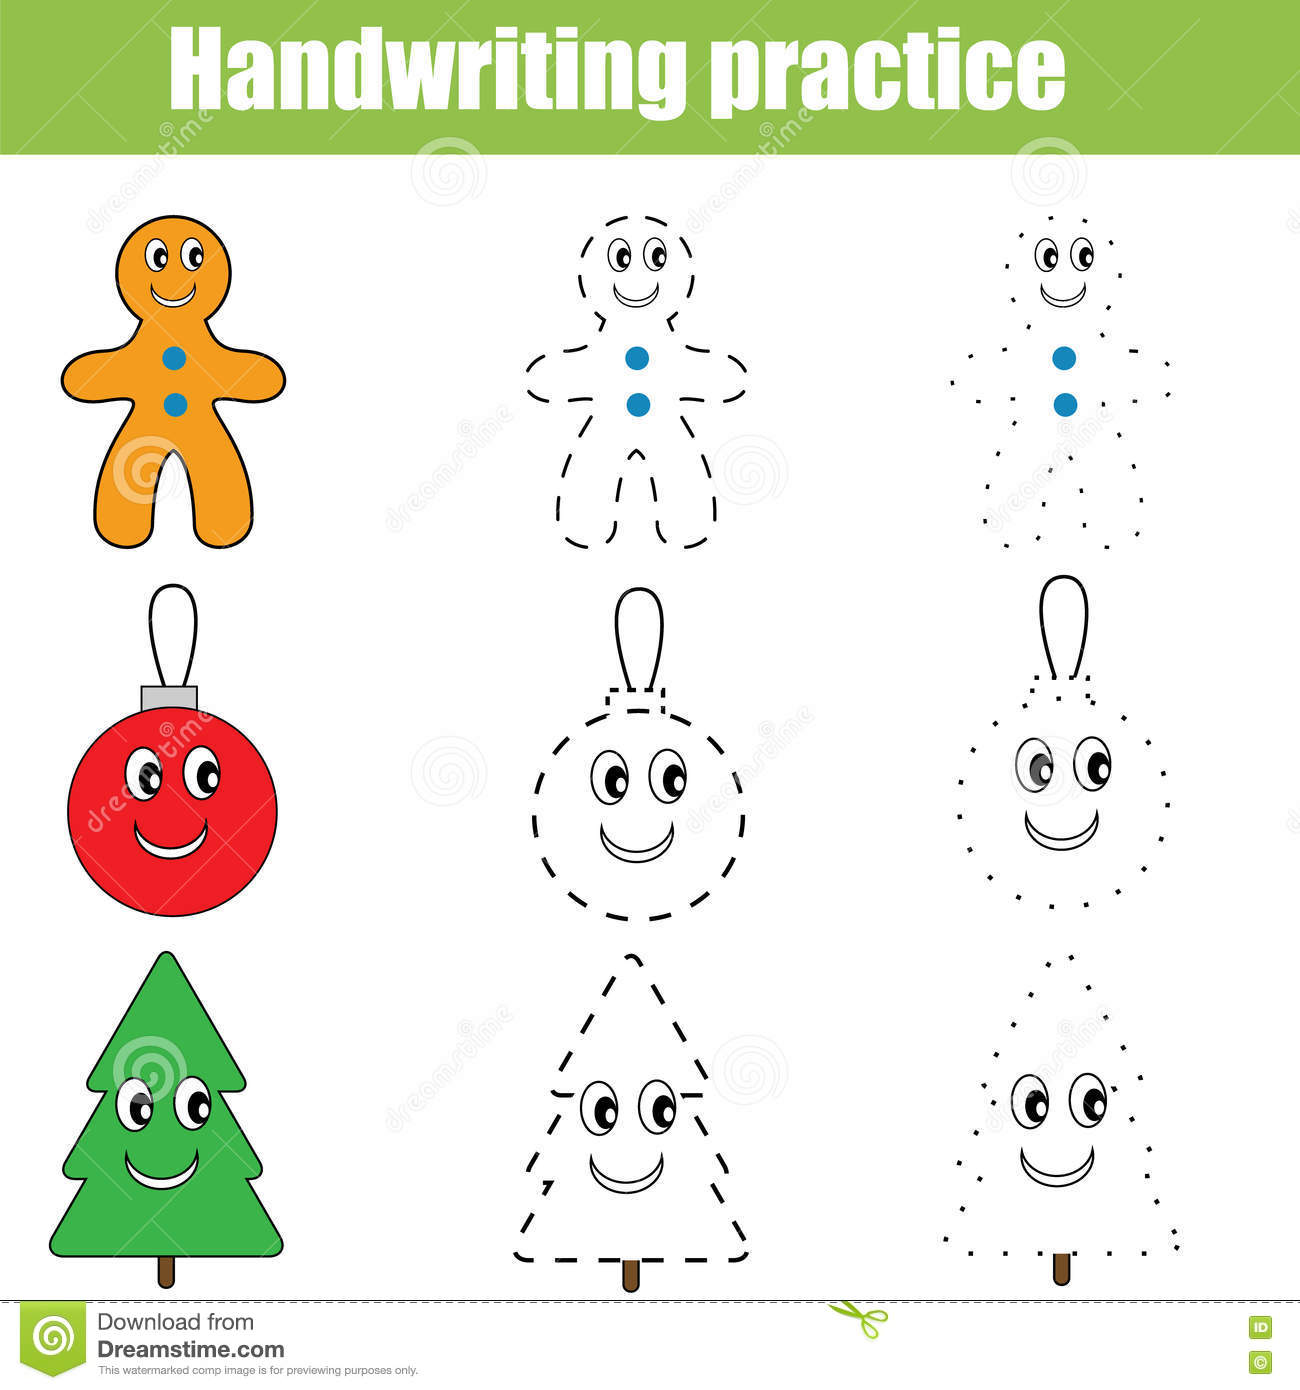 Handwriting Practice Sheet Educational Children Game Printable Worksheet Christmas Theme